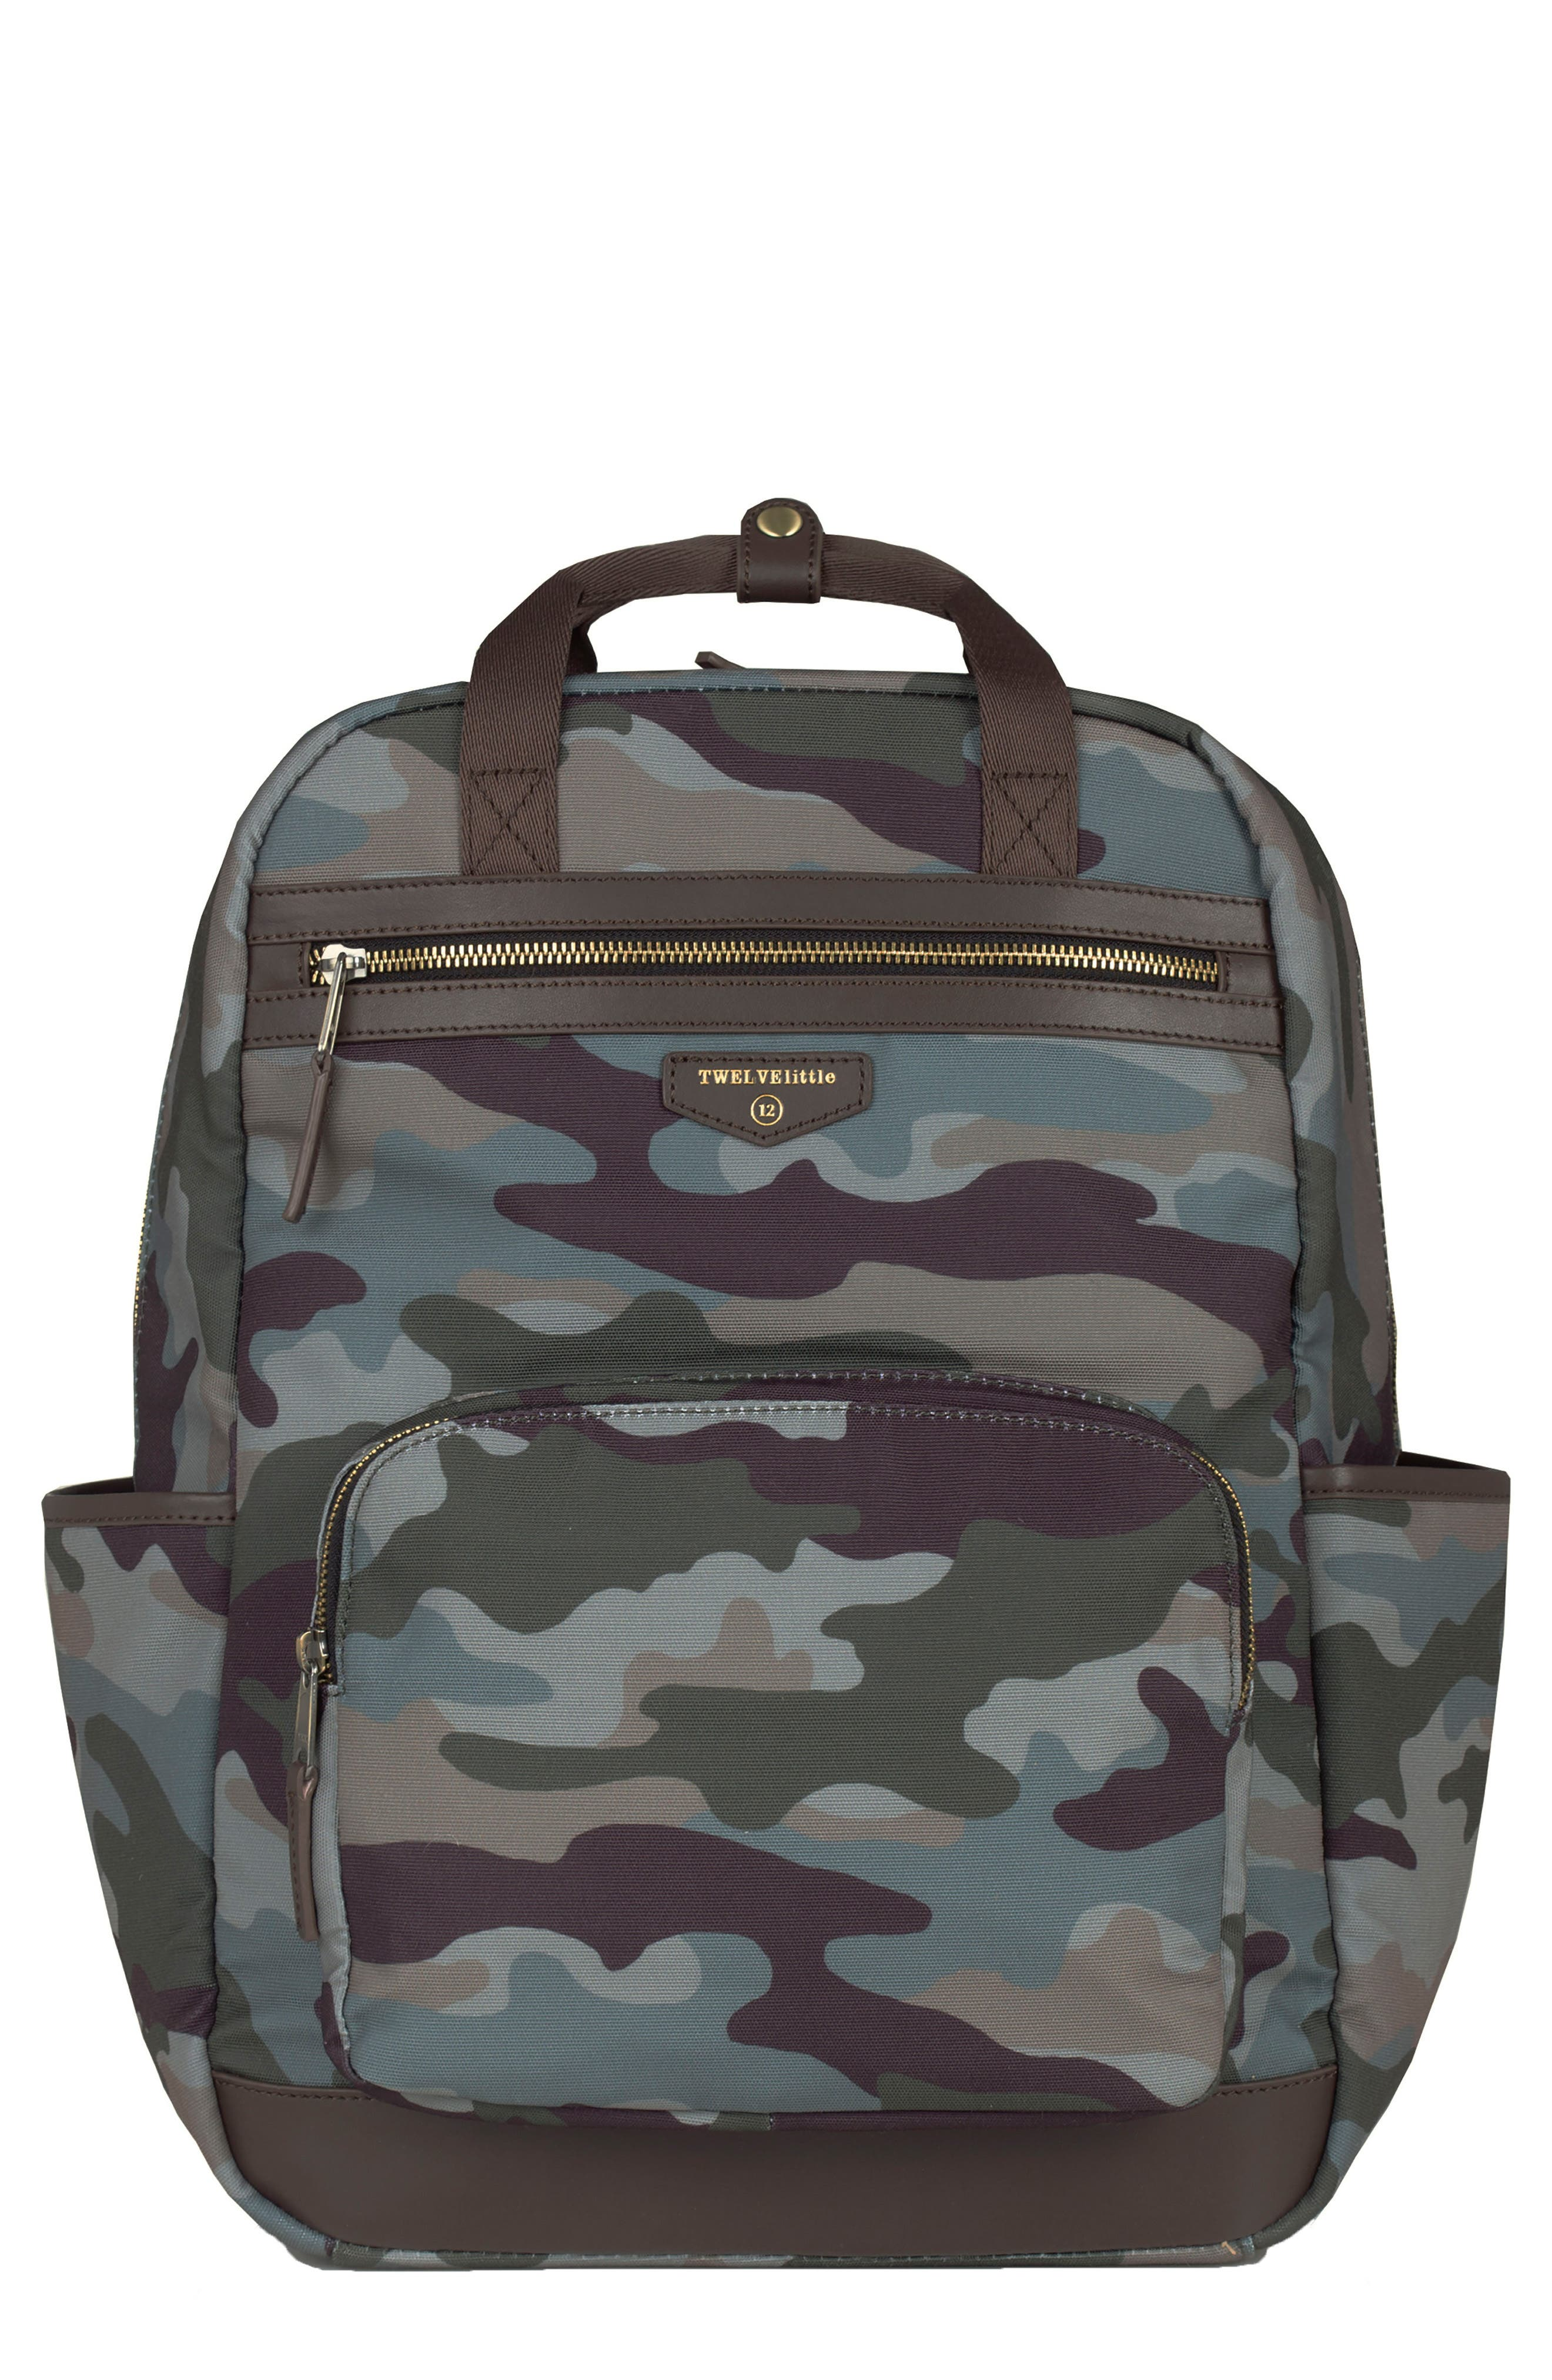 'Courage' Unisex Backpack Diaper Bag,                             Main thumbnail 1, color,                             Camouflage Print